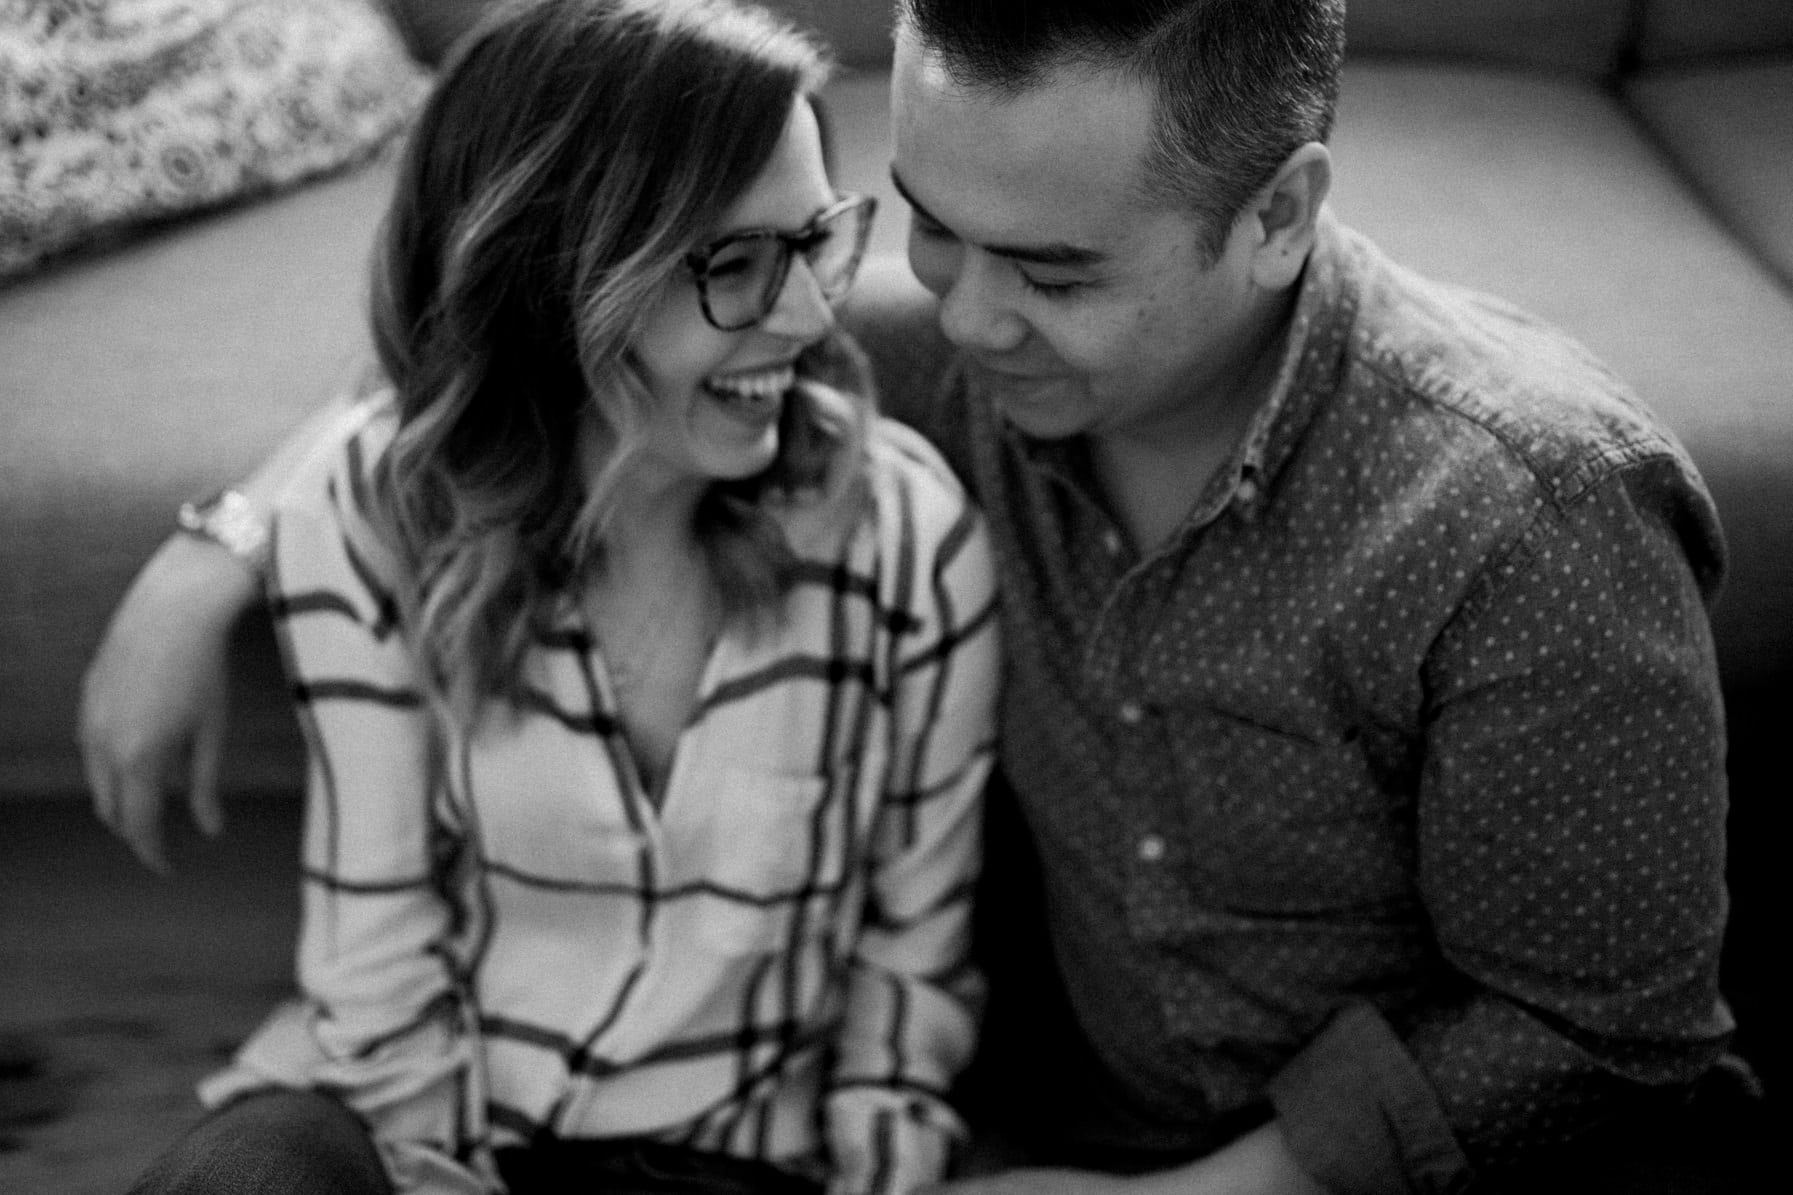 Couple laugh in living room - Cozy At-Home Photos Lifestyle